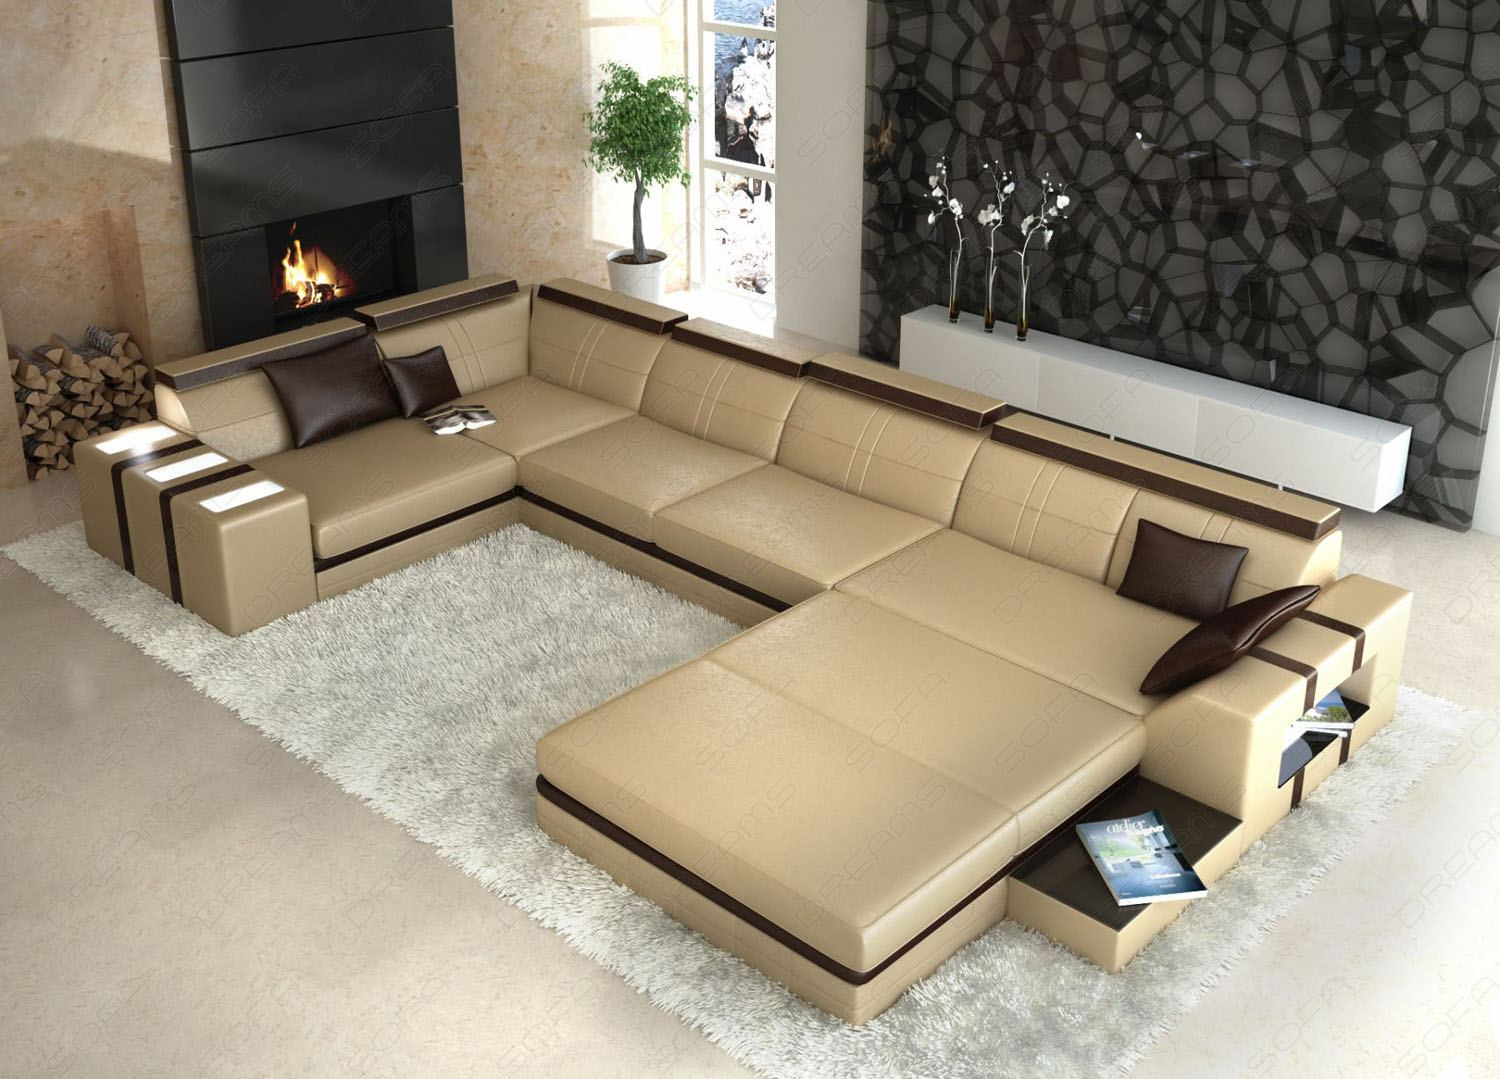 sofa u form gebraucht innenr ume und m bel ideen. Black Bedroom Furniture Sets. Home Design Ideas